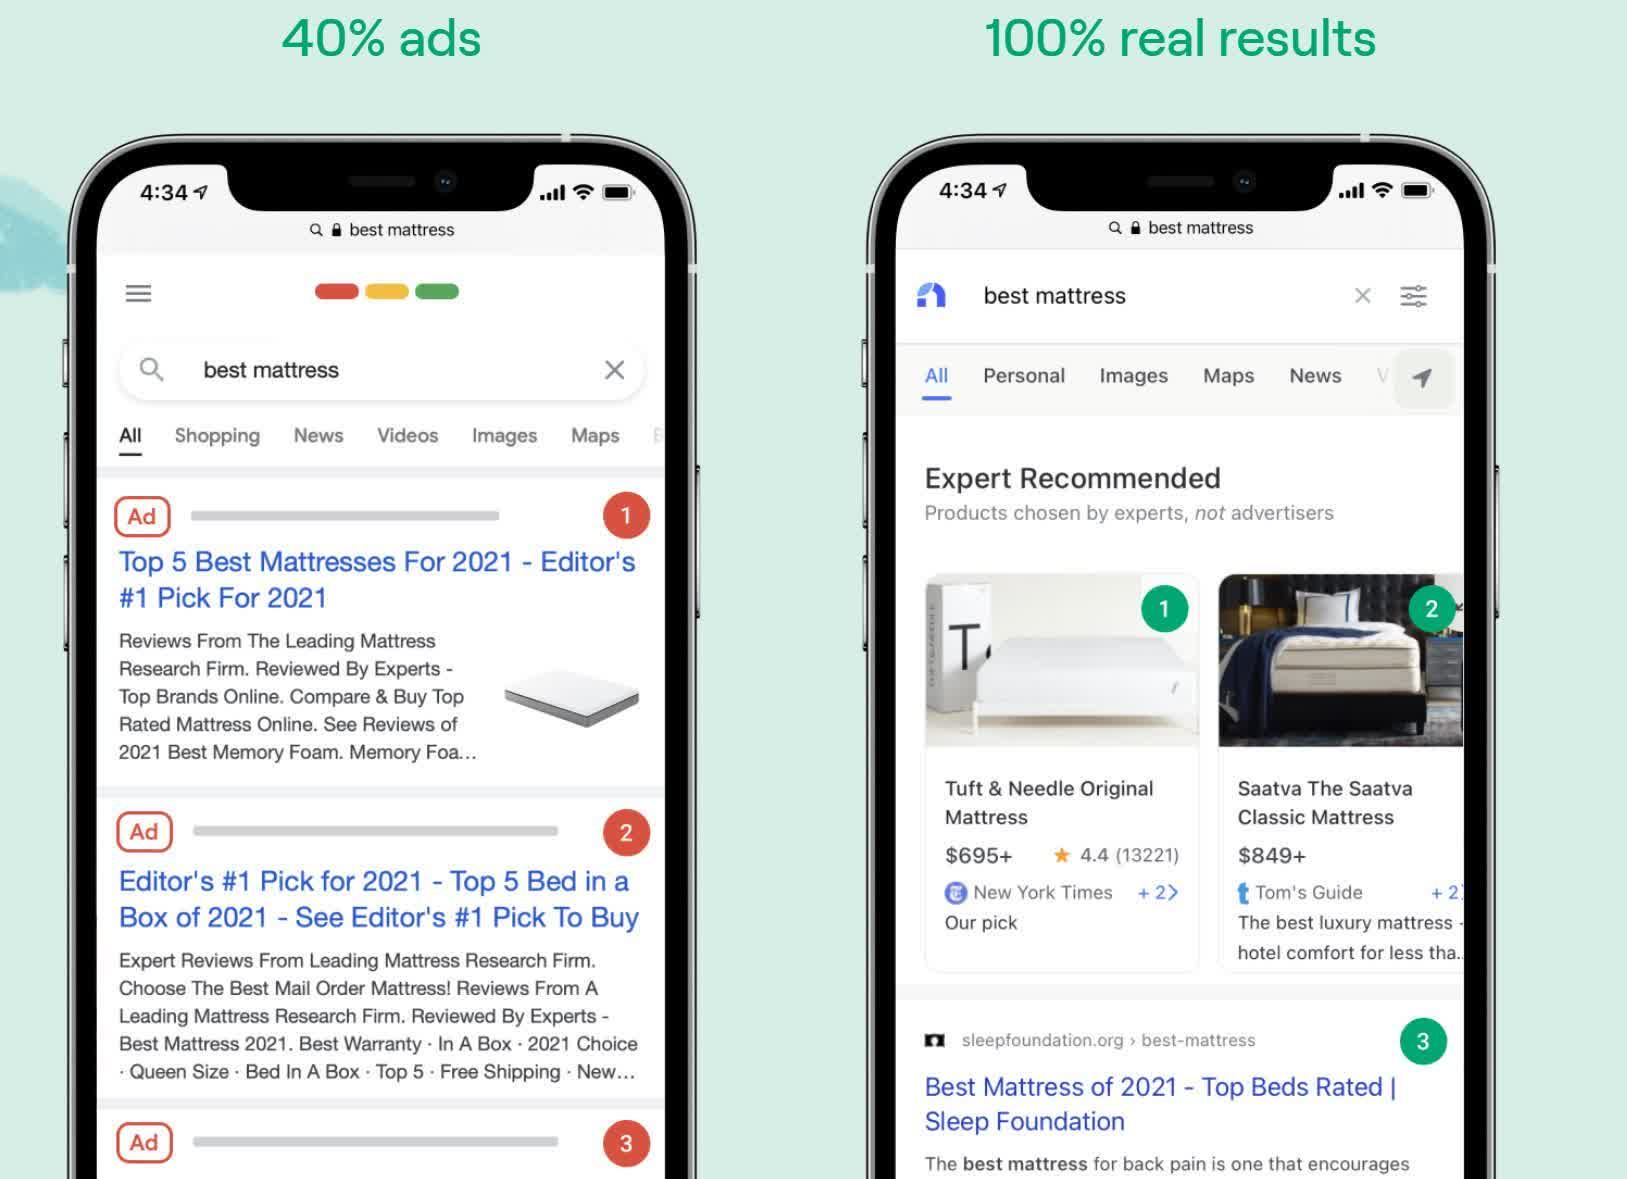 Former Googlers launch Neeva, a $4.95 p/m search engine with no ads and a privacy focus